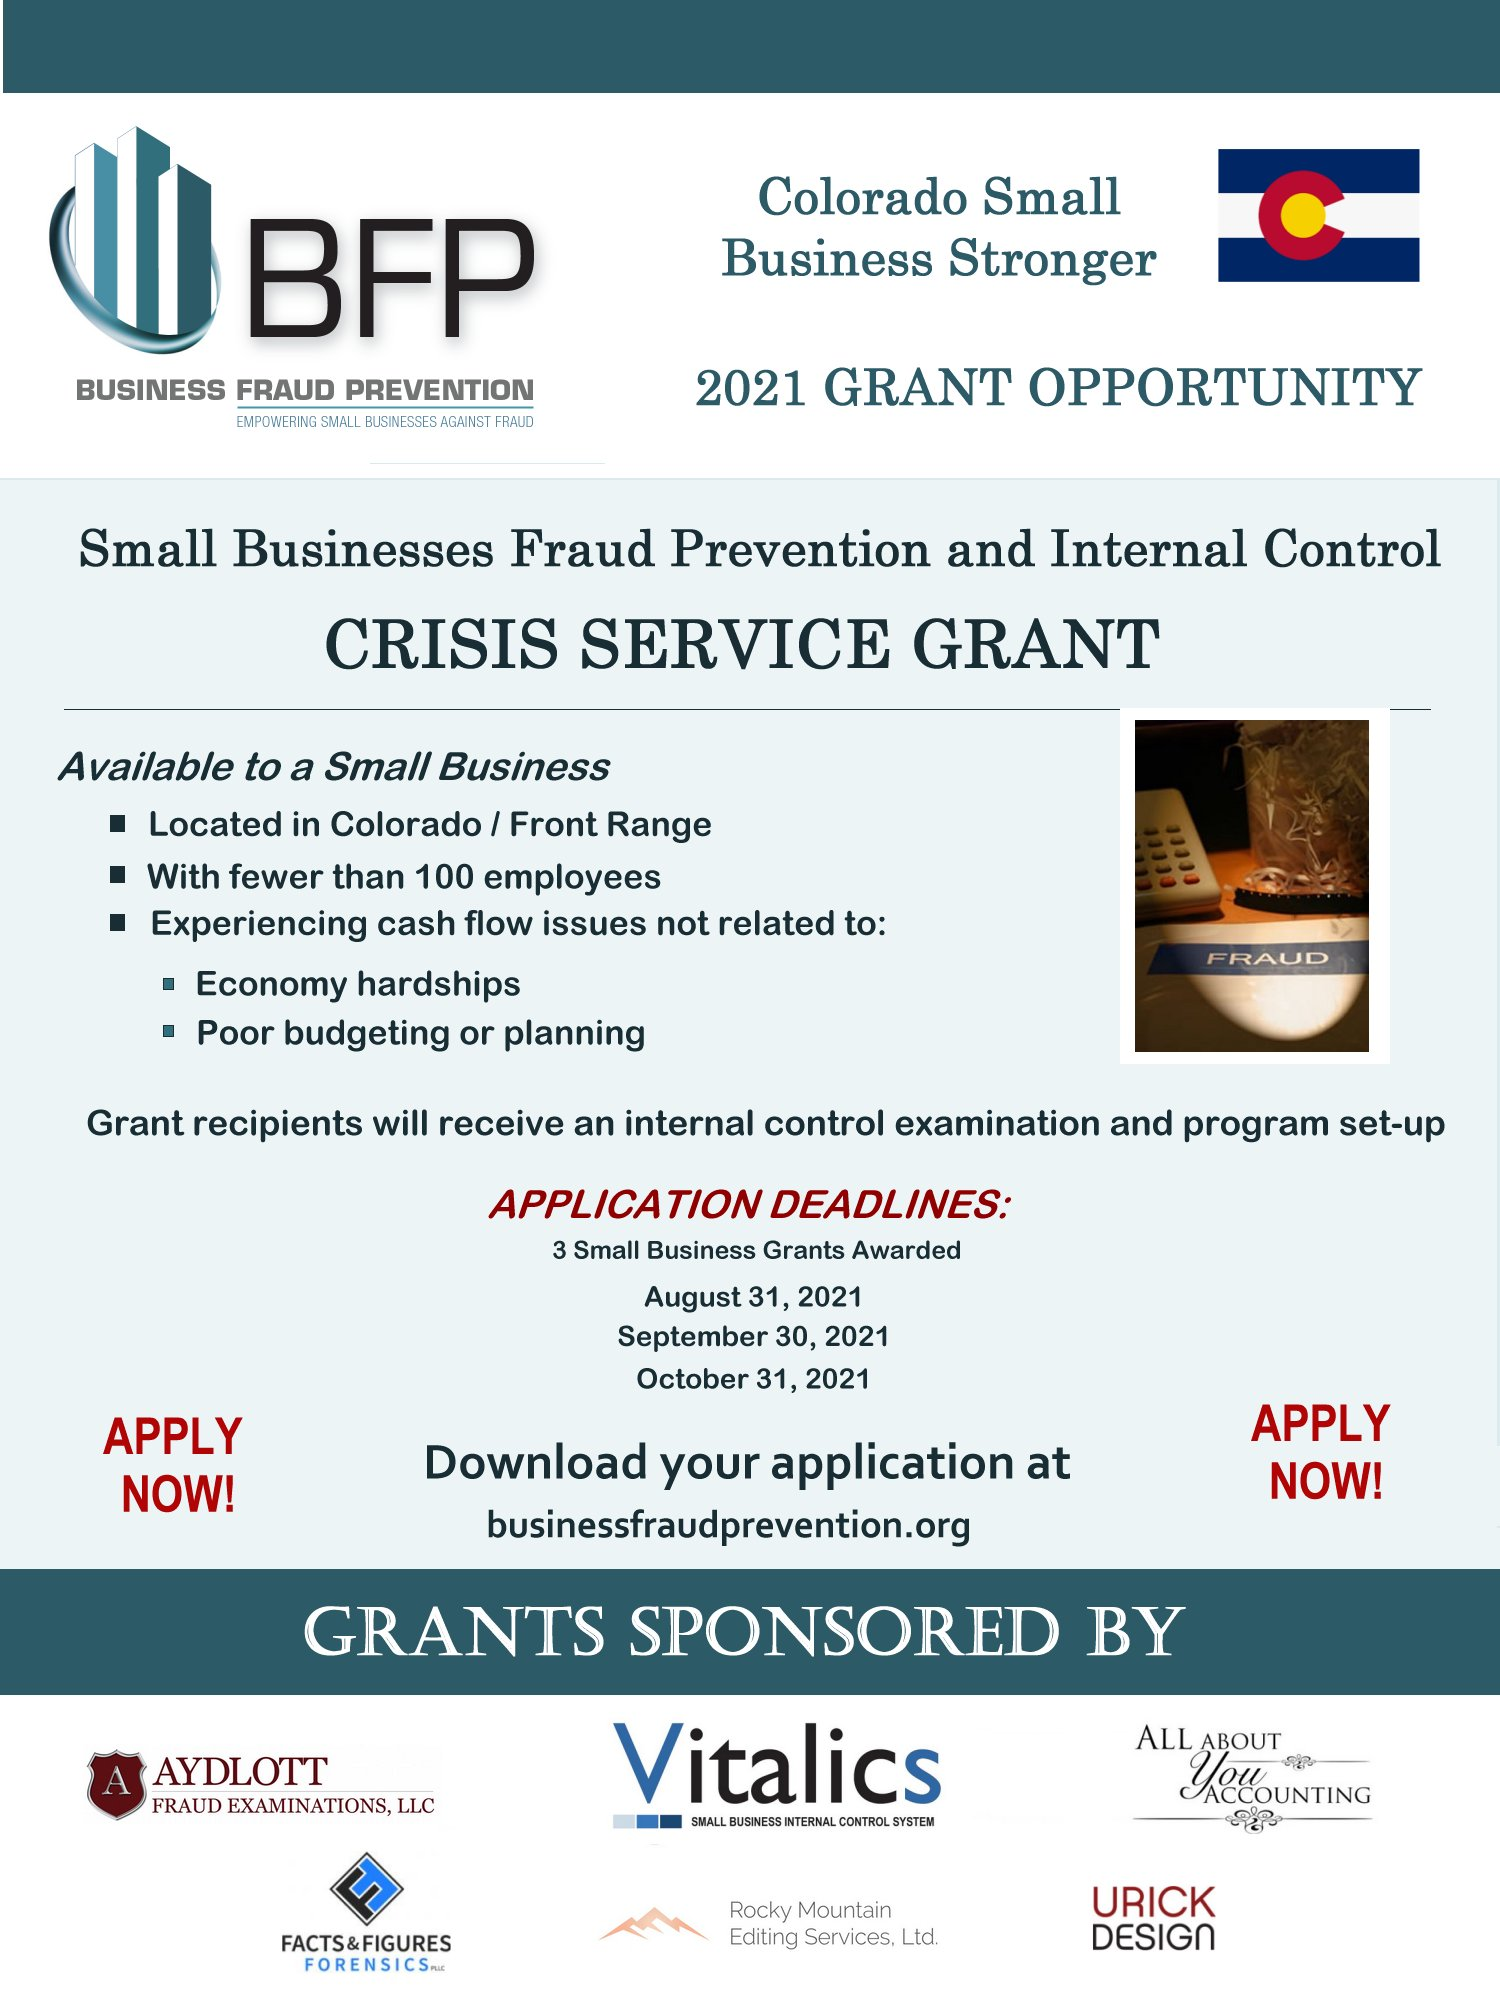 Small Business Internal Control Grant